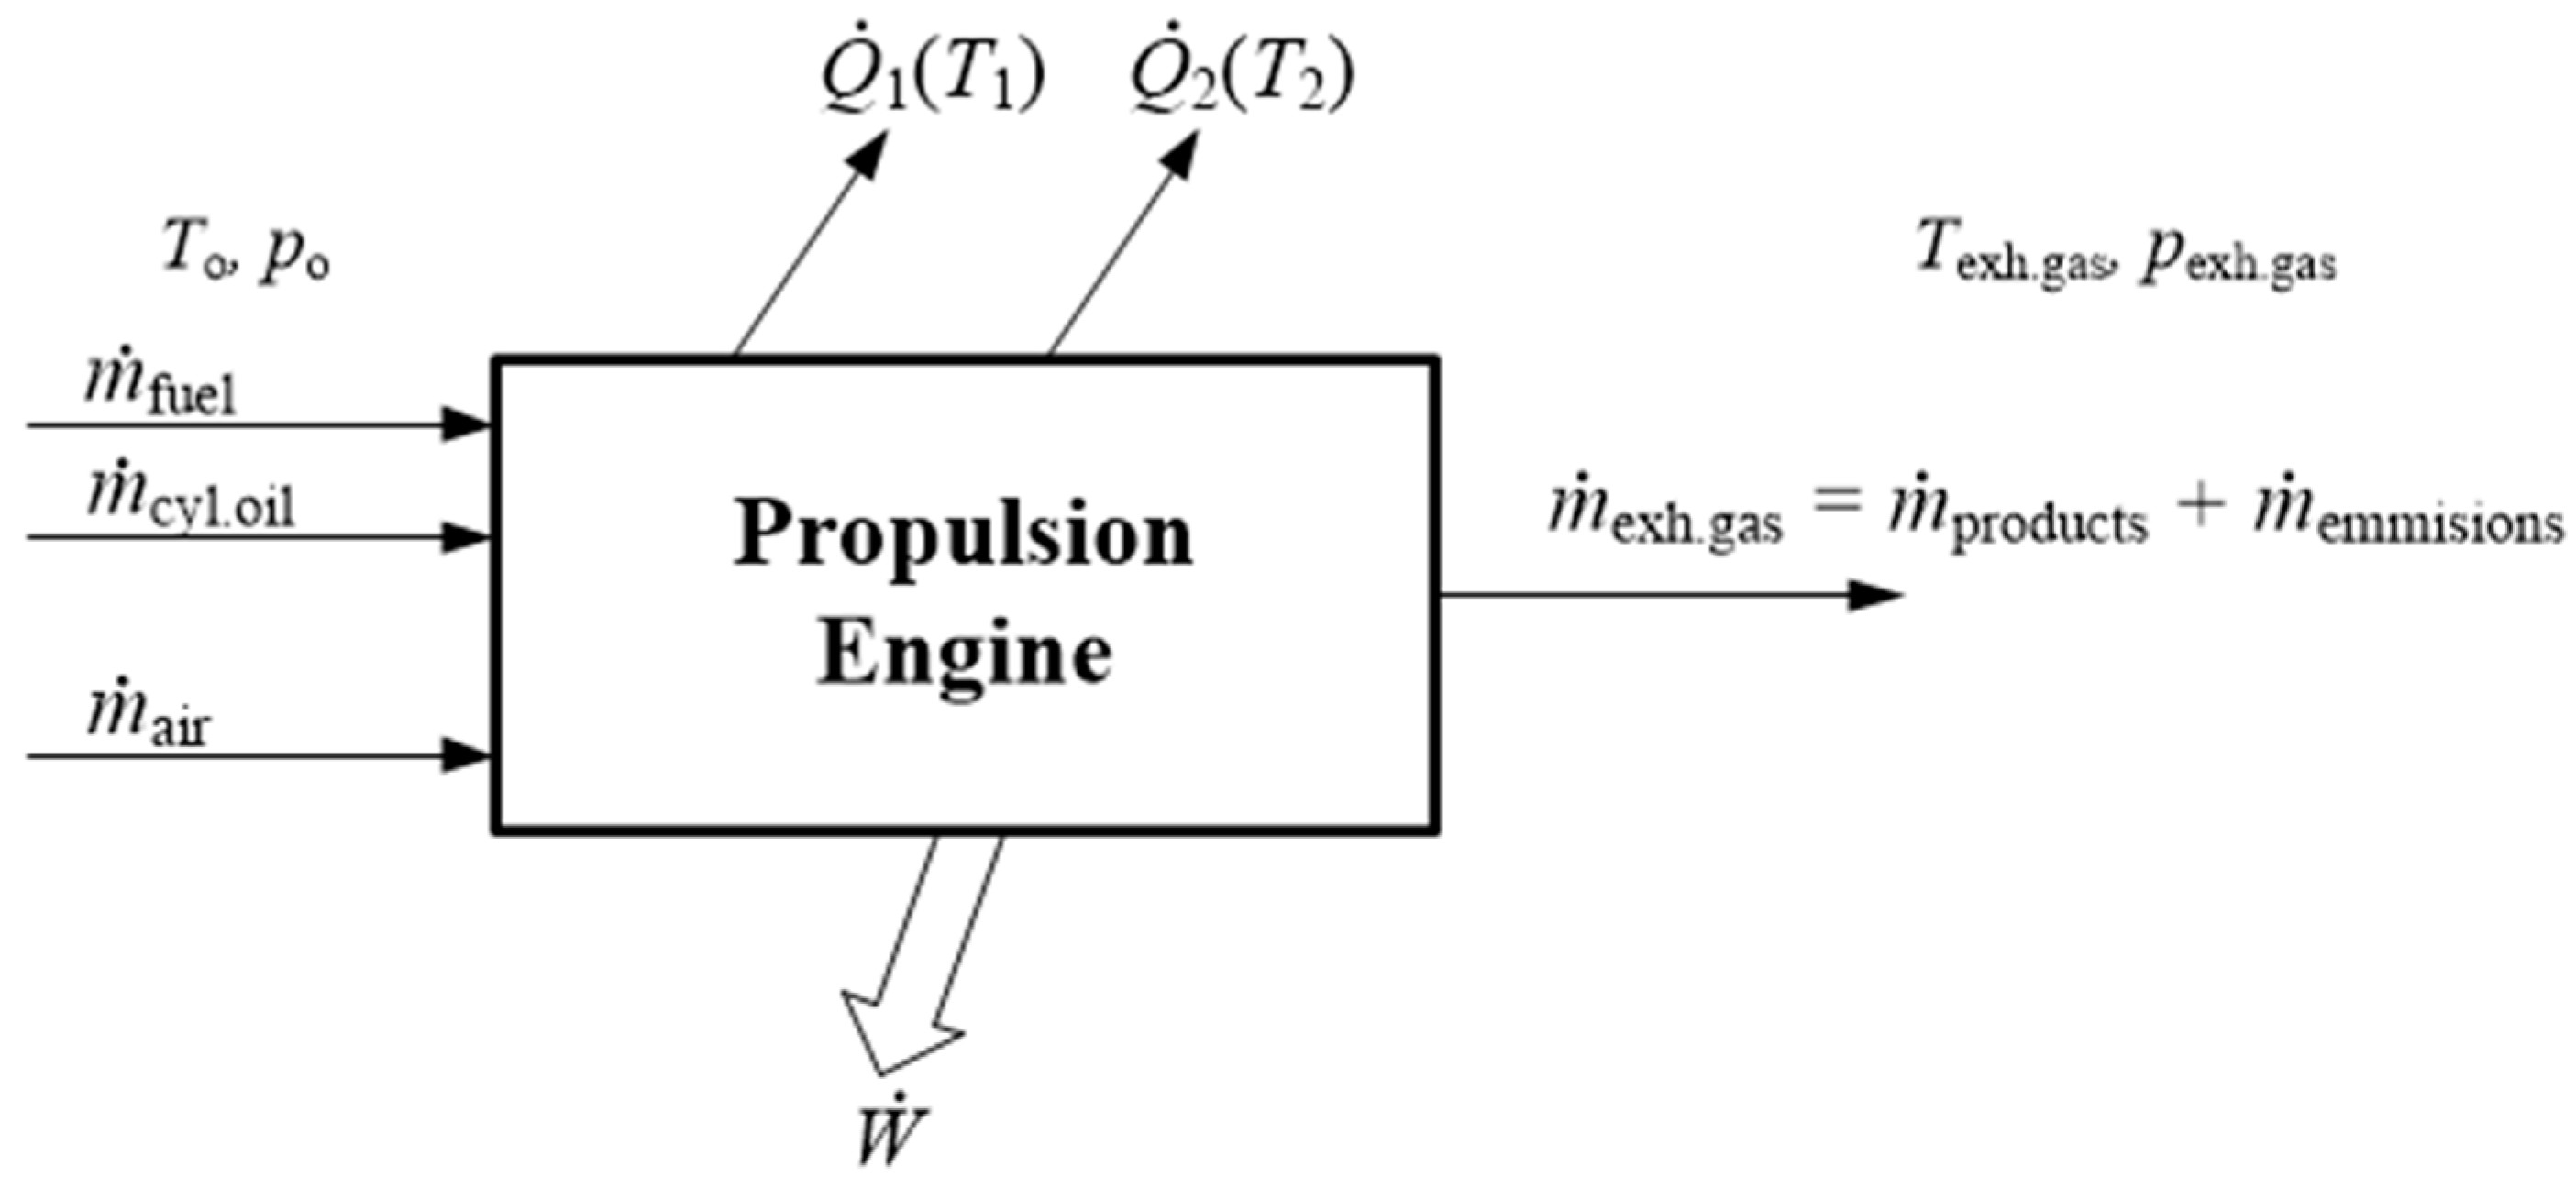 Valve Timing Diagram Of Four Stroke Diesel Engine Energies Free Full Text Of Valve Timing Diagram Of Four Stroke Diesel Engine